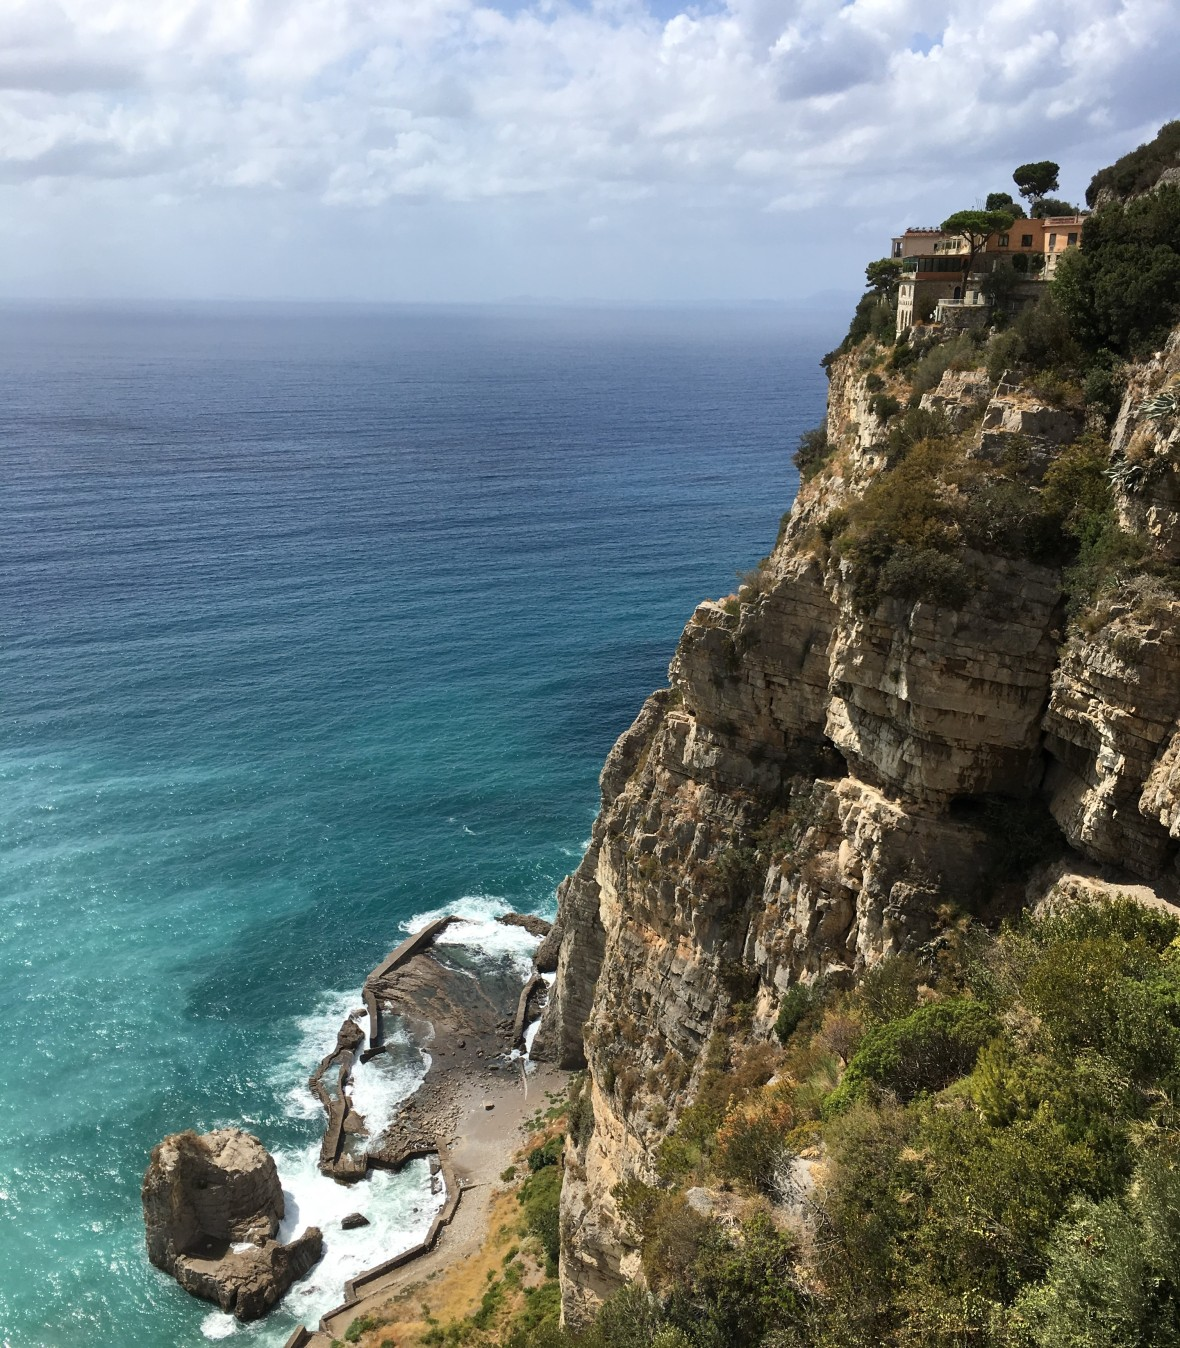 Coastal Drive From Naples To Amalfi, Italy